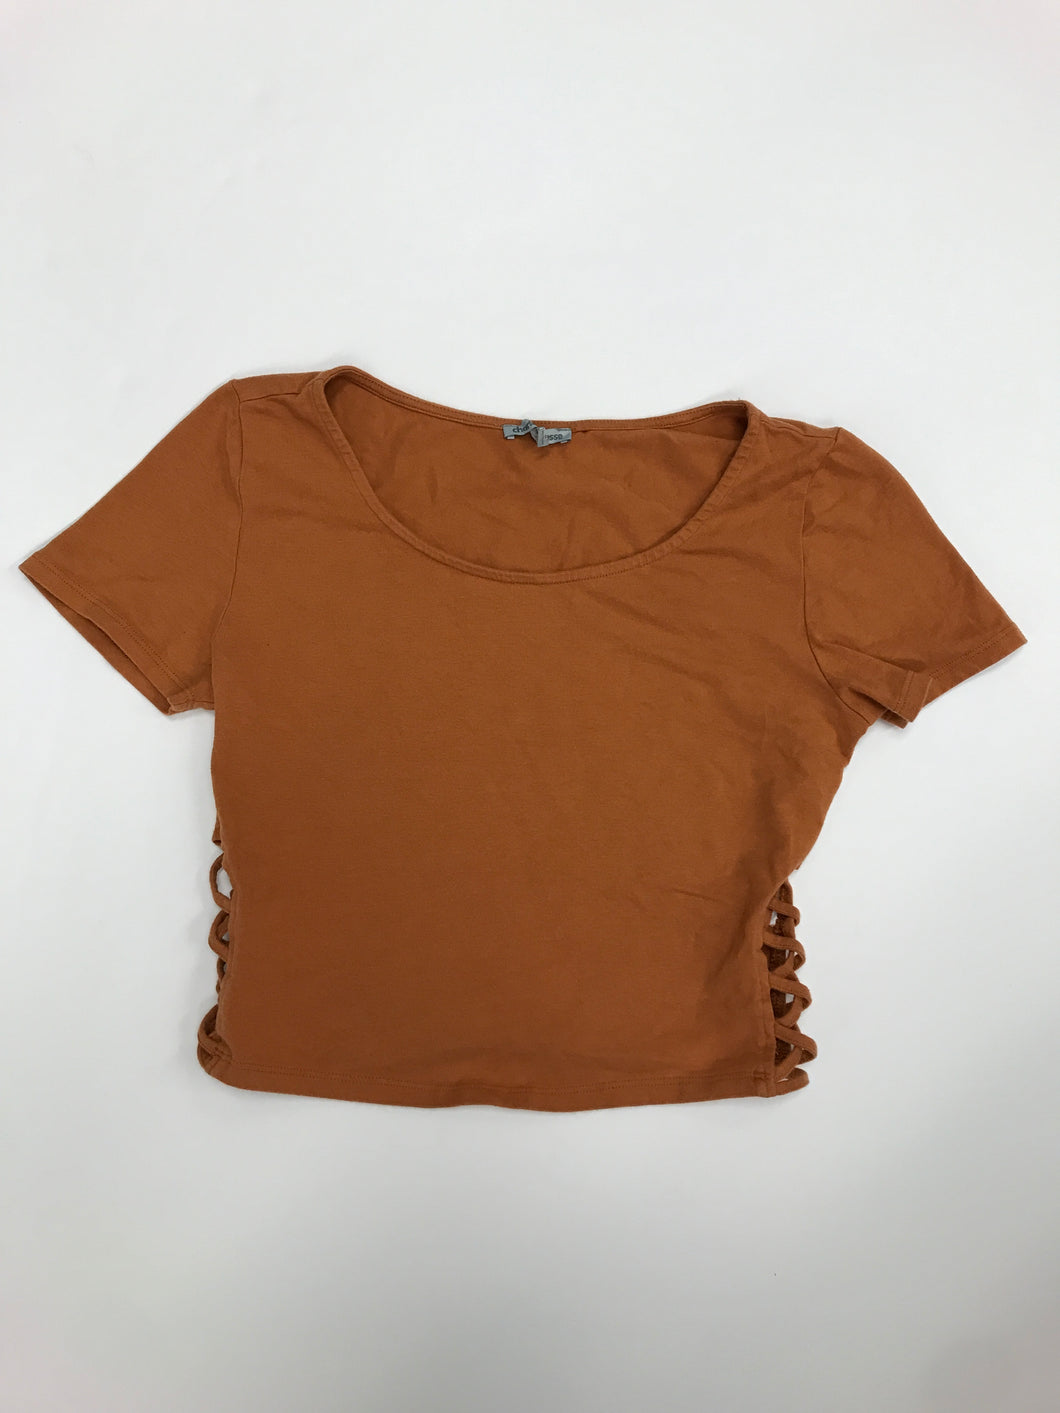 Charlotte Russe T-Shirt Size Medium